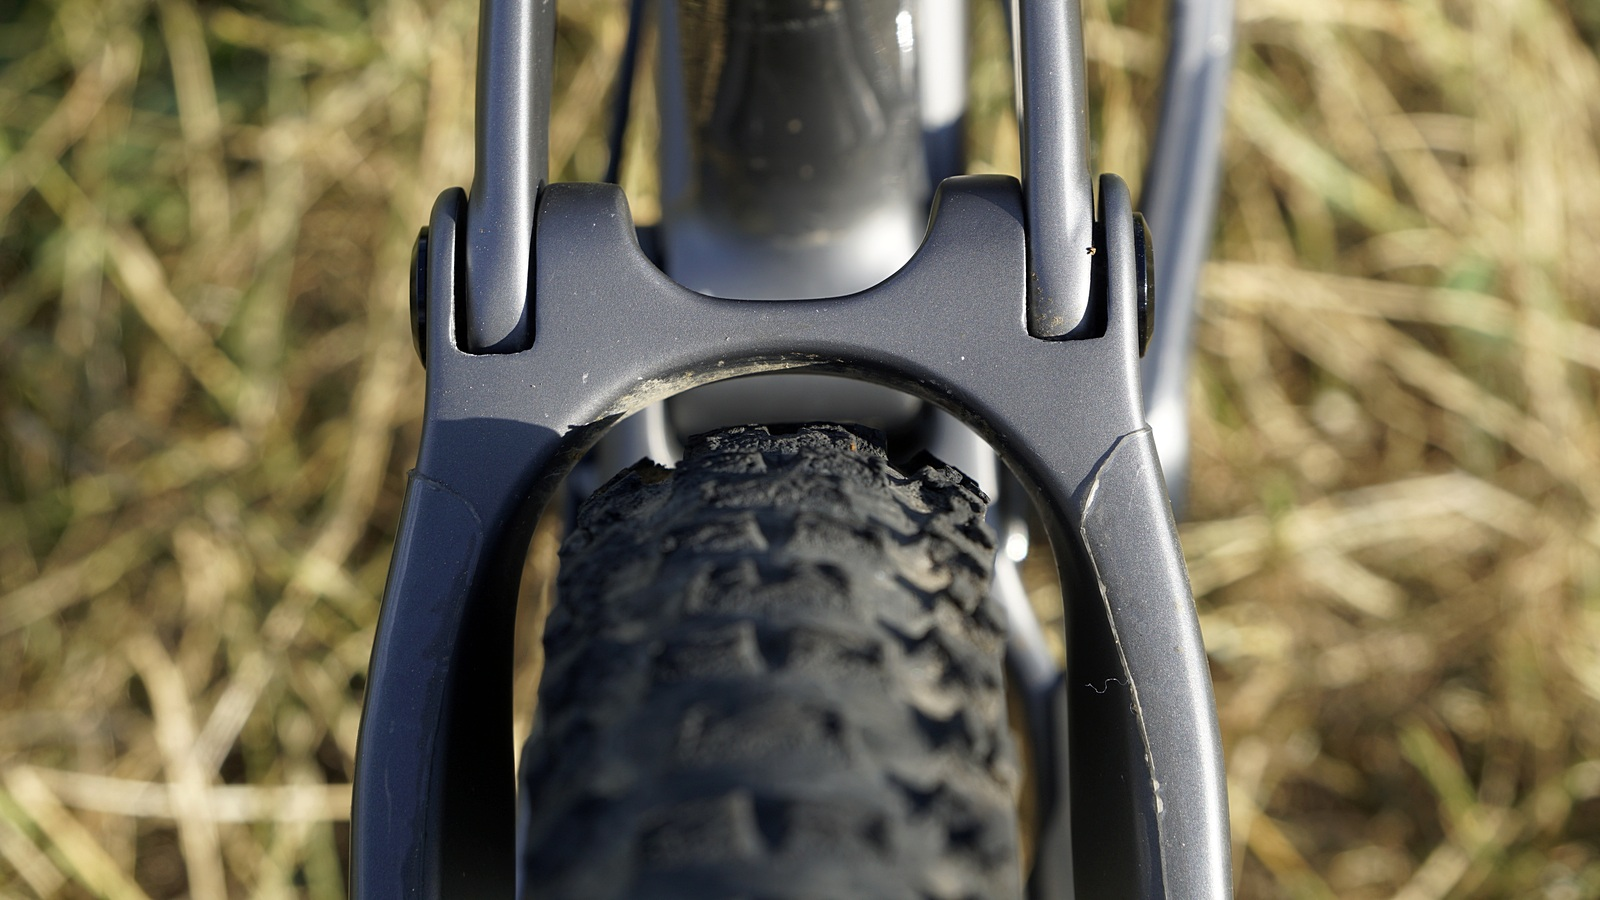 ac630641d8b On a bike with such an extreme geometry, having a short chainstay is  necessary in order to not lose too much agility. A short rear triangle, ...